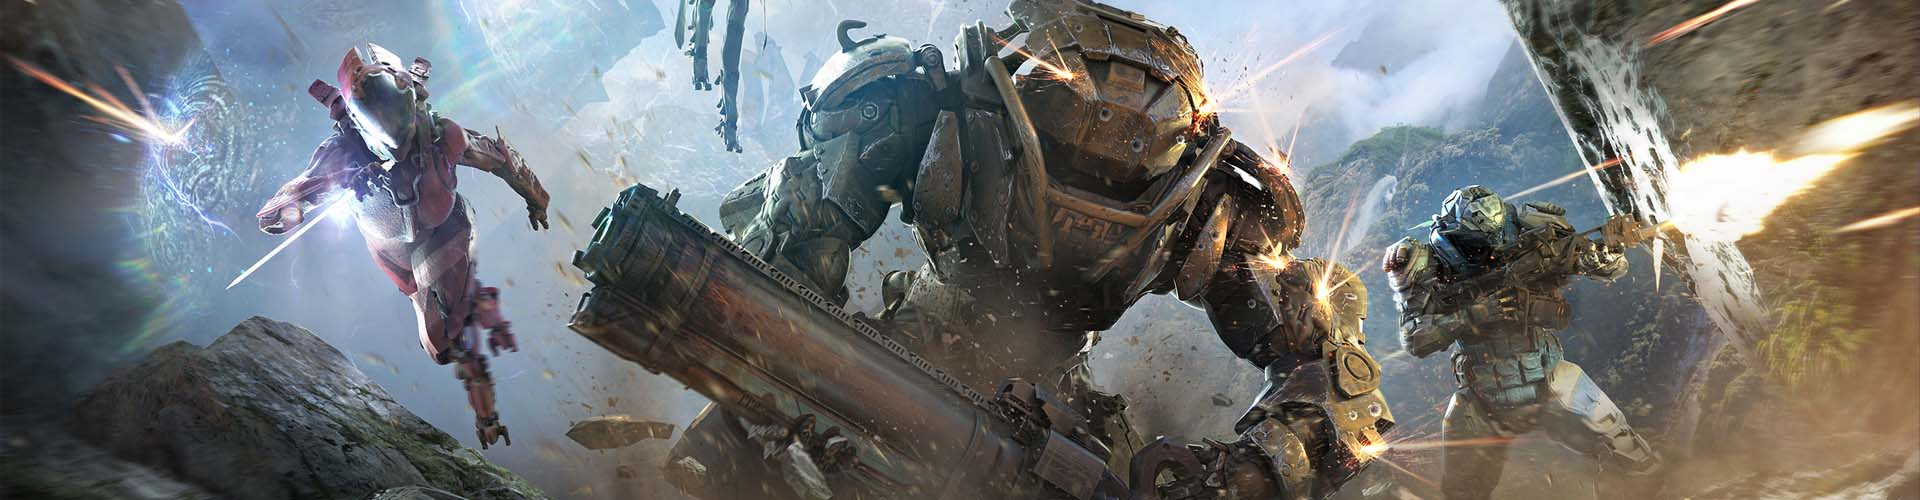 Anthem: Advanced Combat Guide (Combos, Primers, Detonators, Elemental Effects)